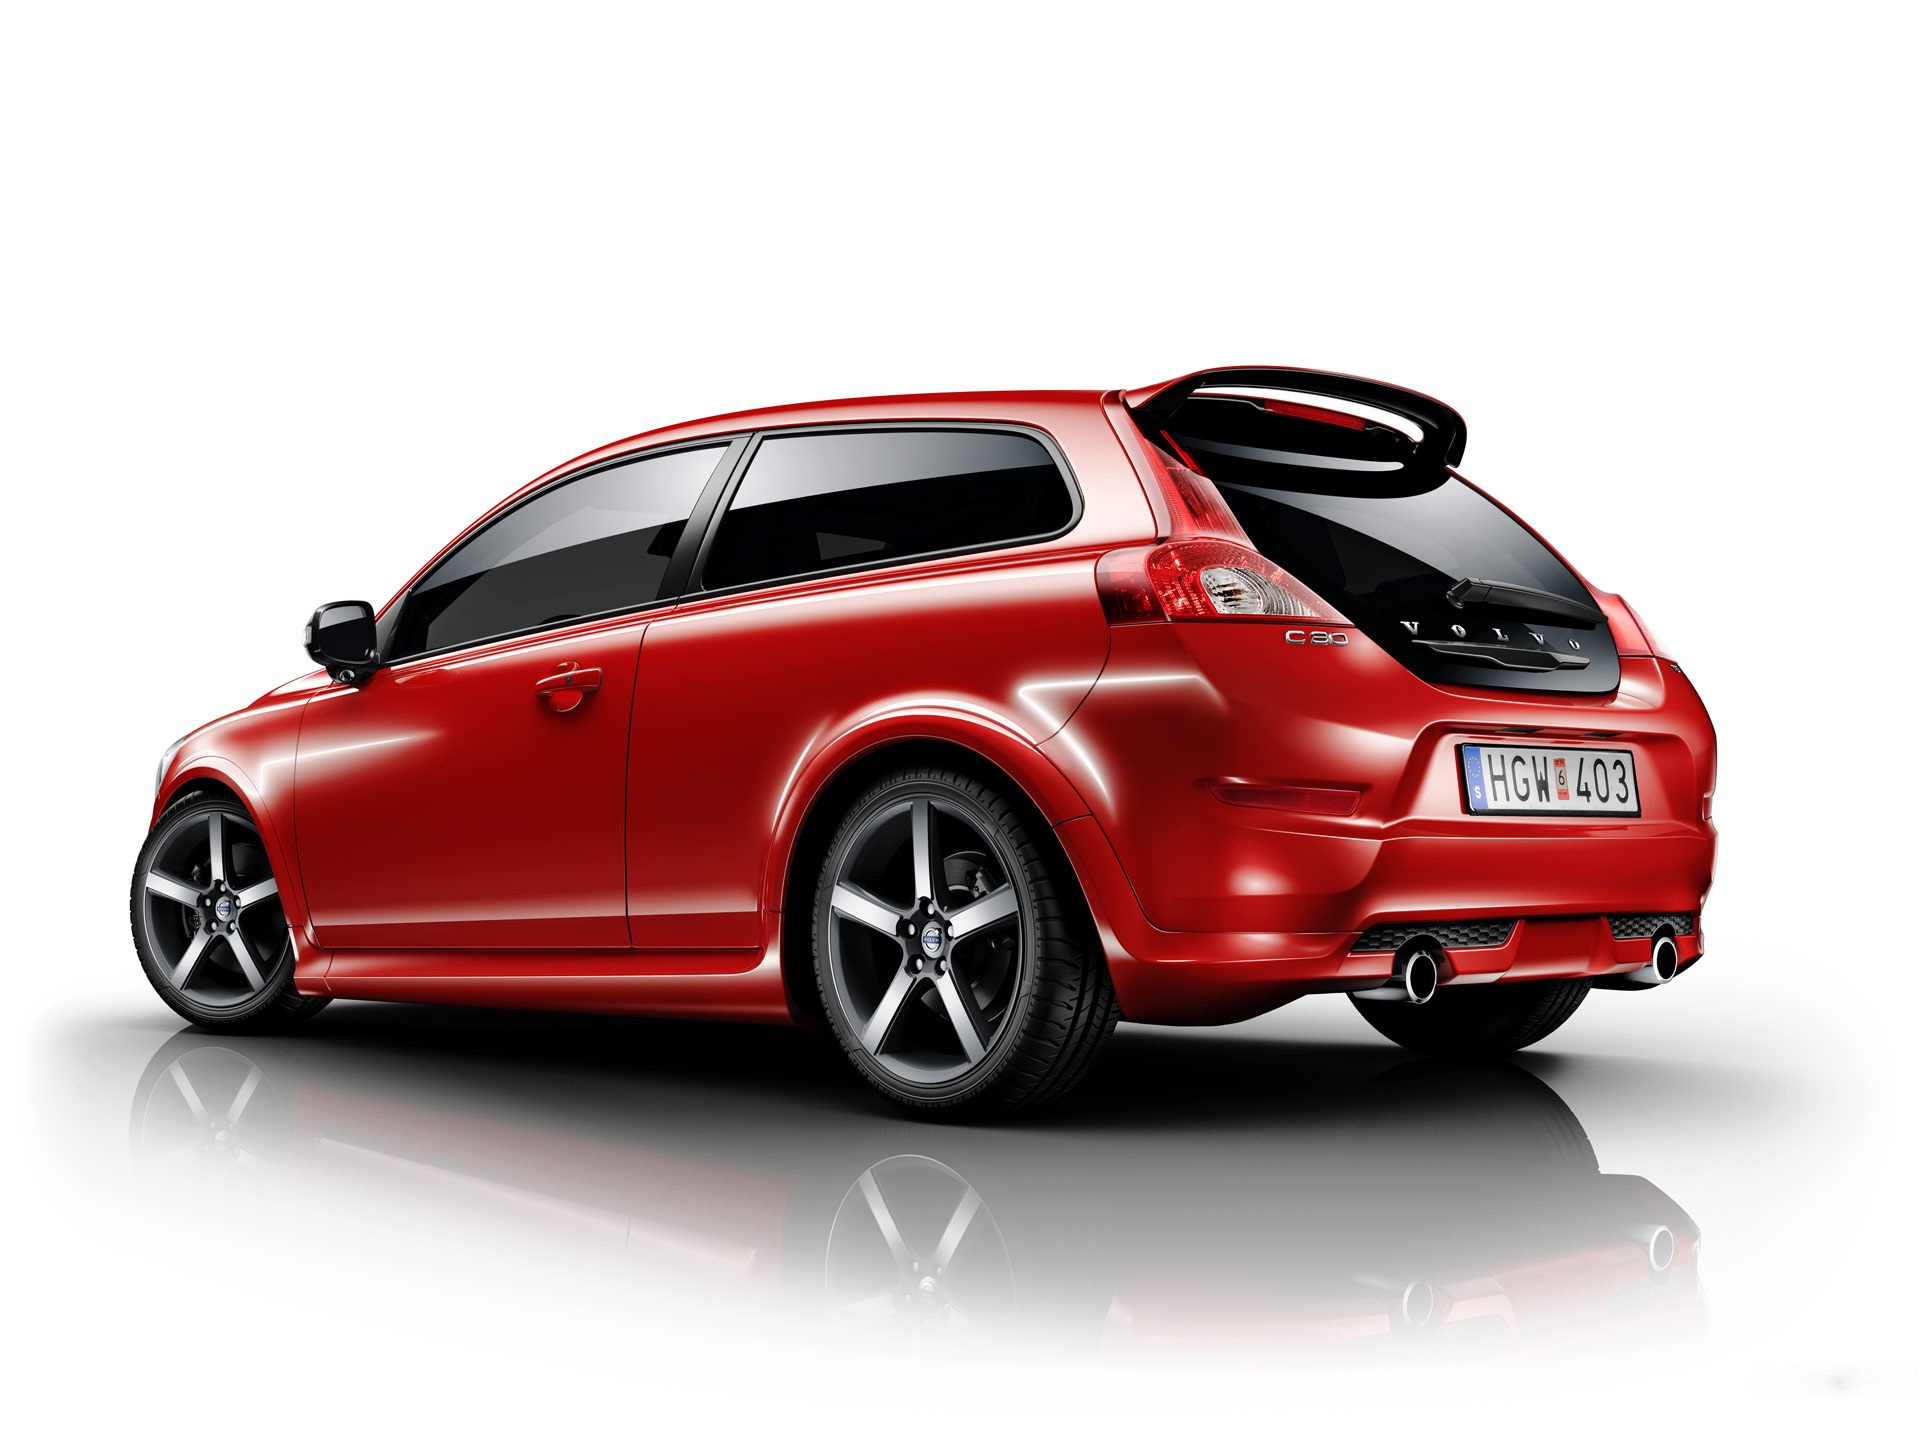 Volvo C30 R Design Wallpaper Volvo Cars Wallpapers in jpg format for free download